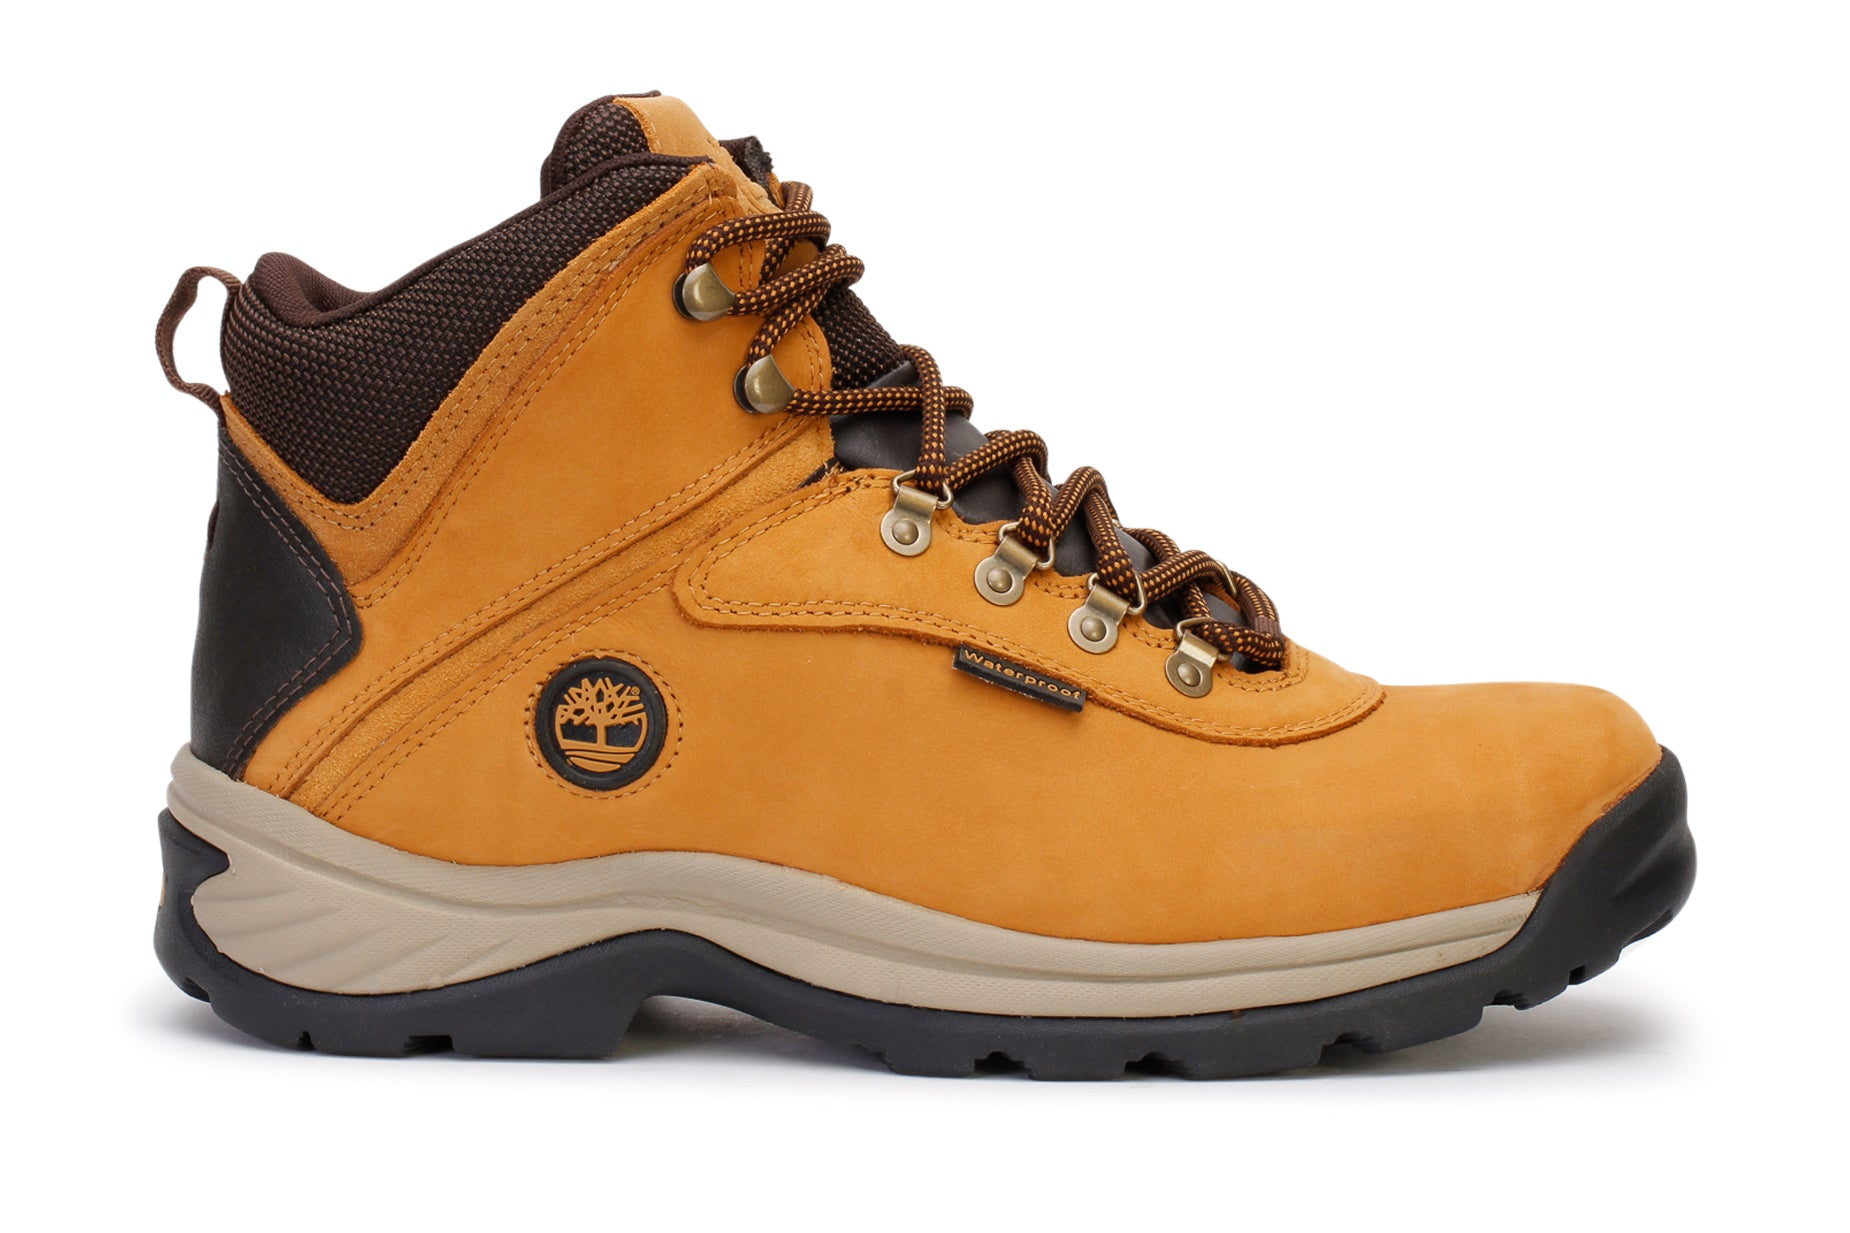 timberland-mens-mid-boots-white-ledge-waterproof-wheat-nubuck-14176-main